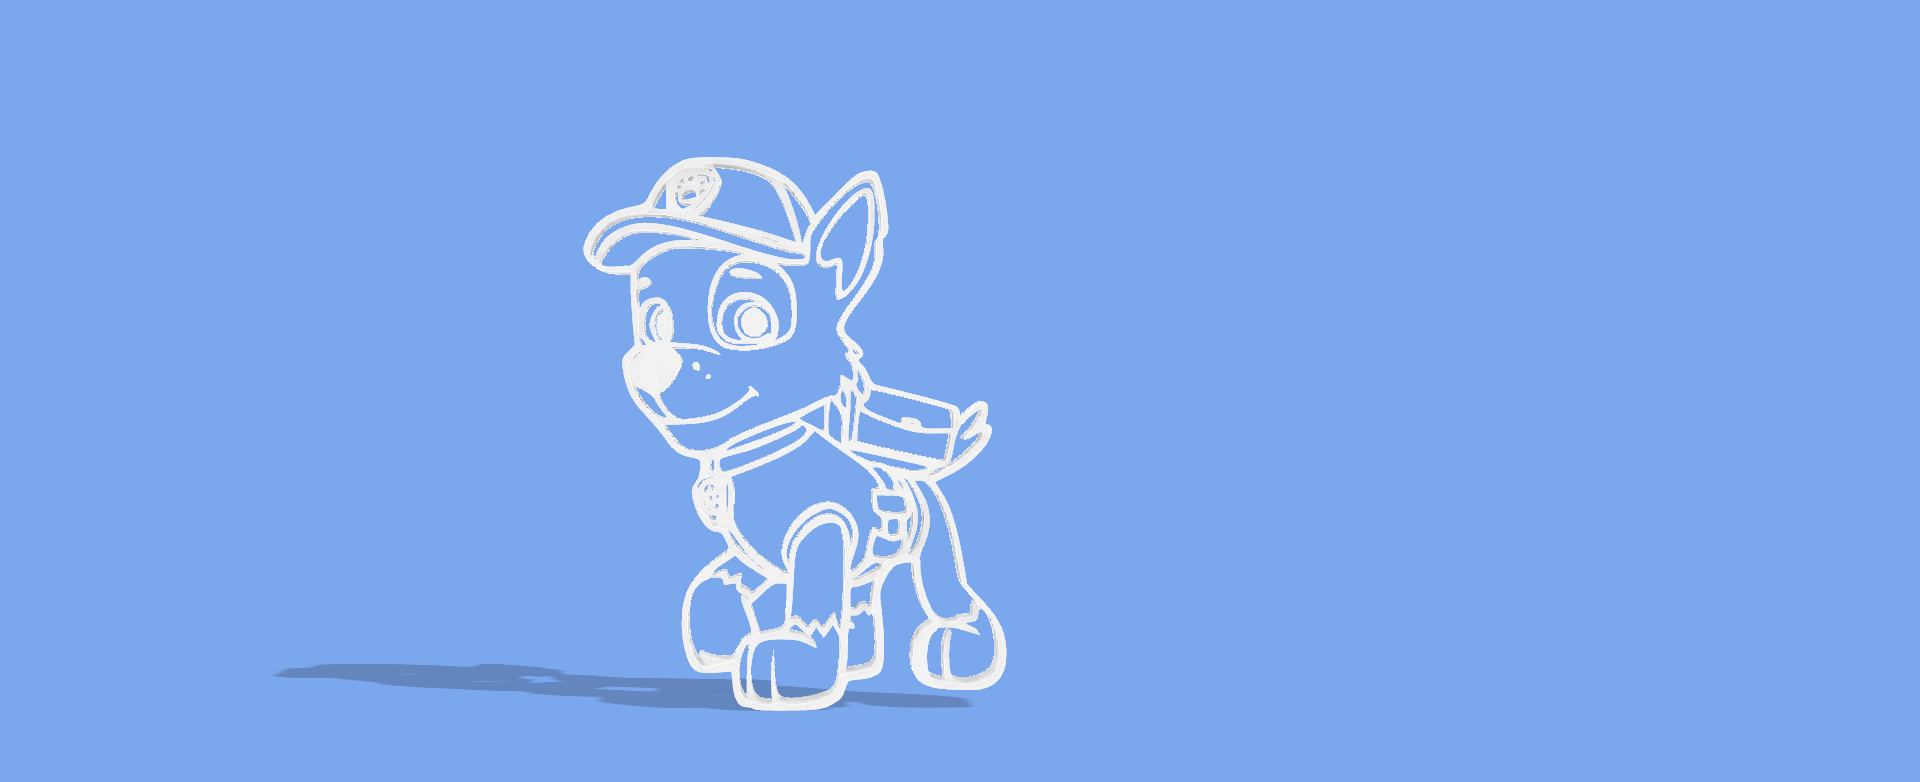 ROCKY PAW PATROL.png Download STL file Rocky paw patrol full body cookie cutter • 3D print model, Geralp